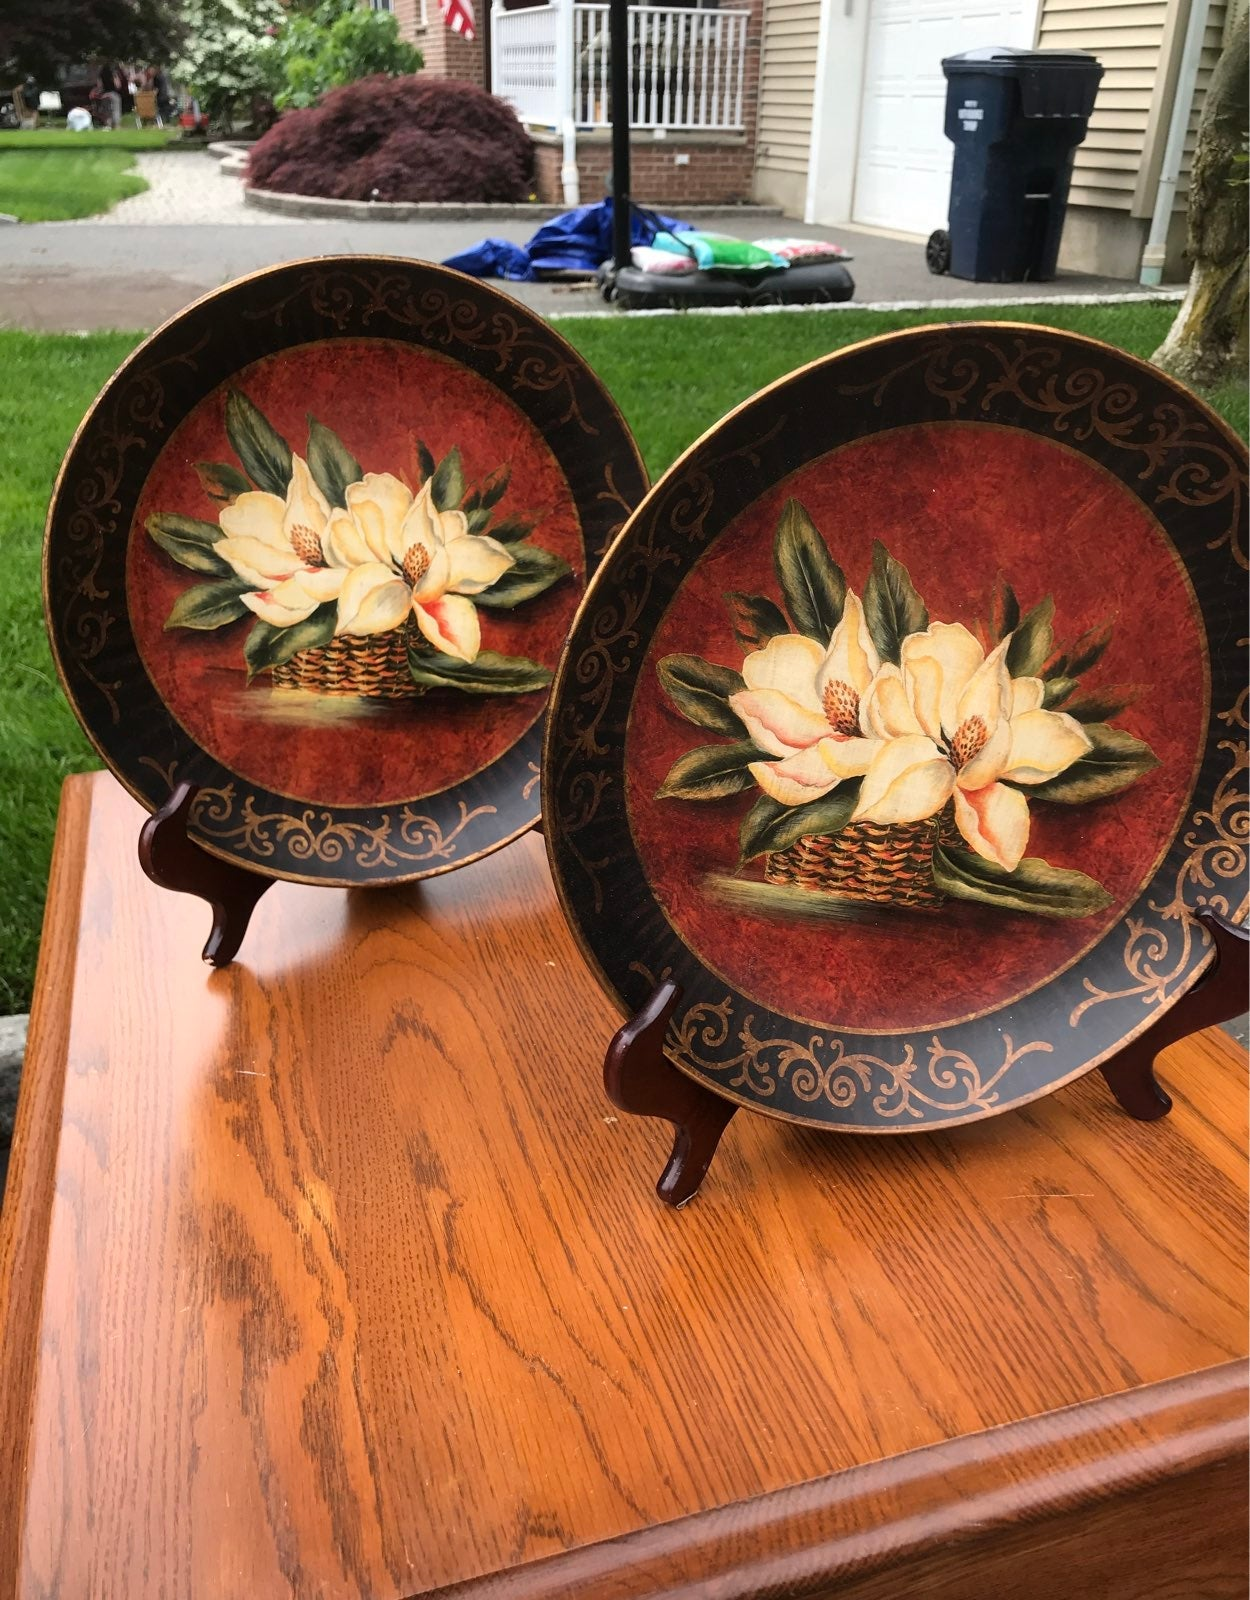 Decorative plates with stand